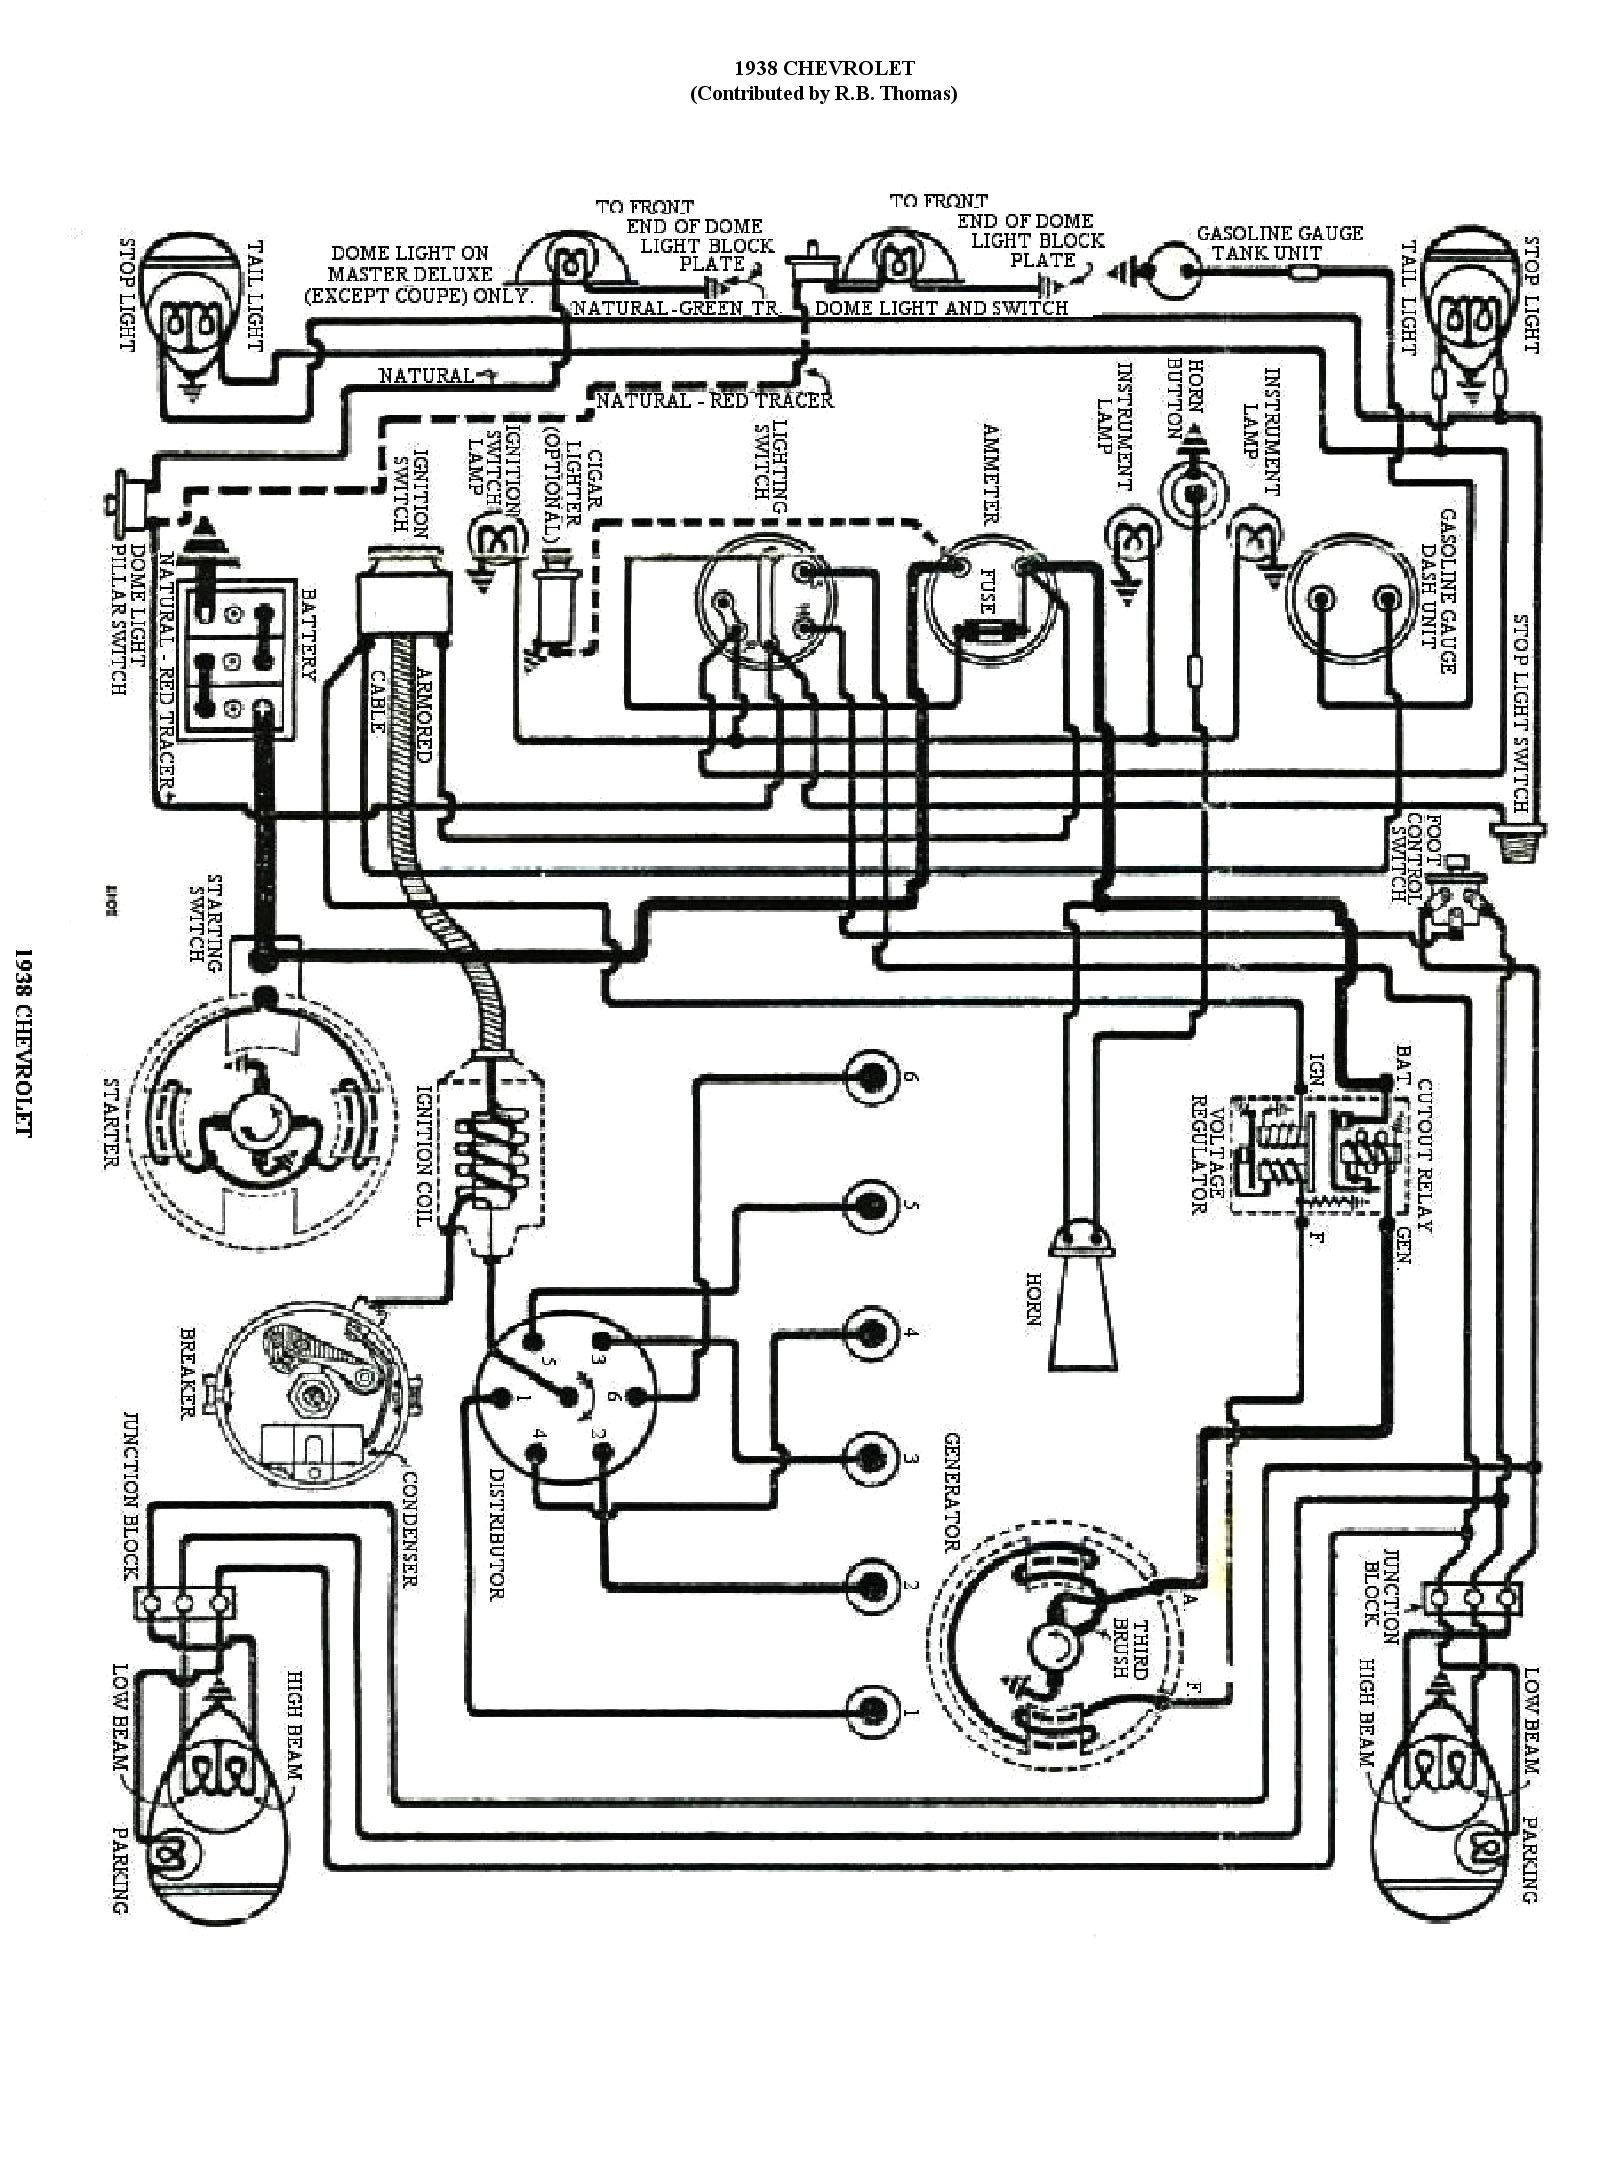 38wiring chevy wiring diagrams Ford F-150 Wire Schematics at creativeand.co